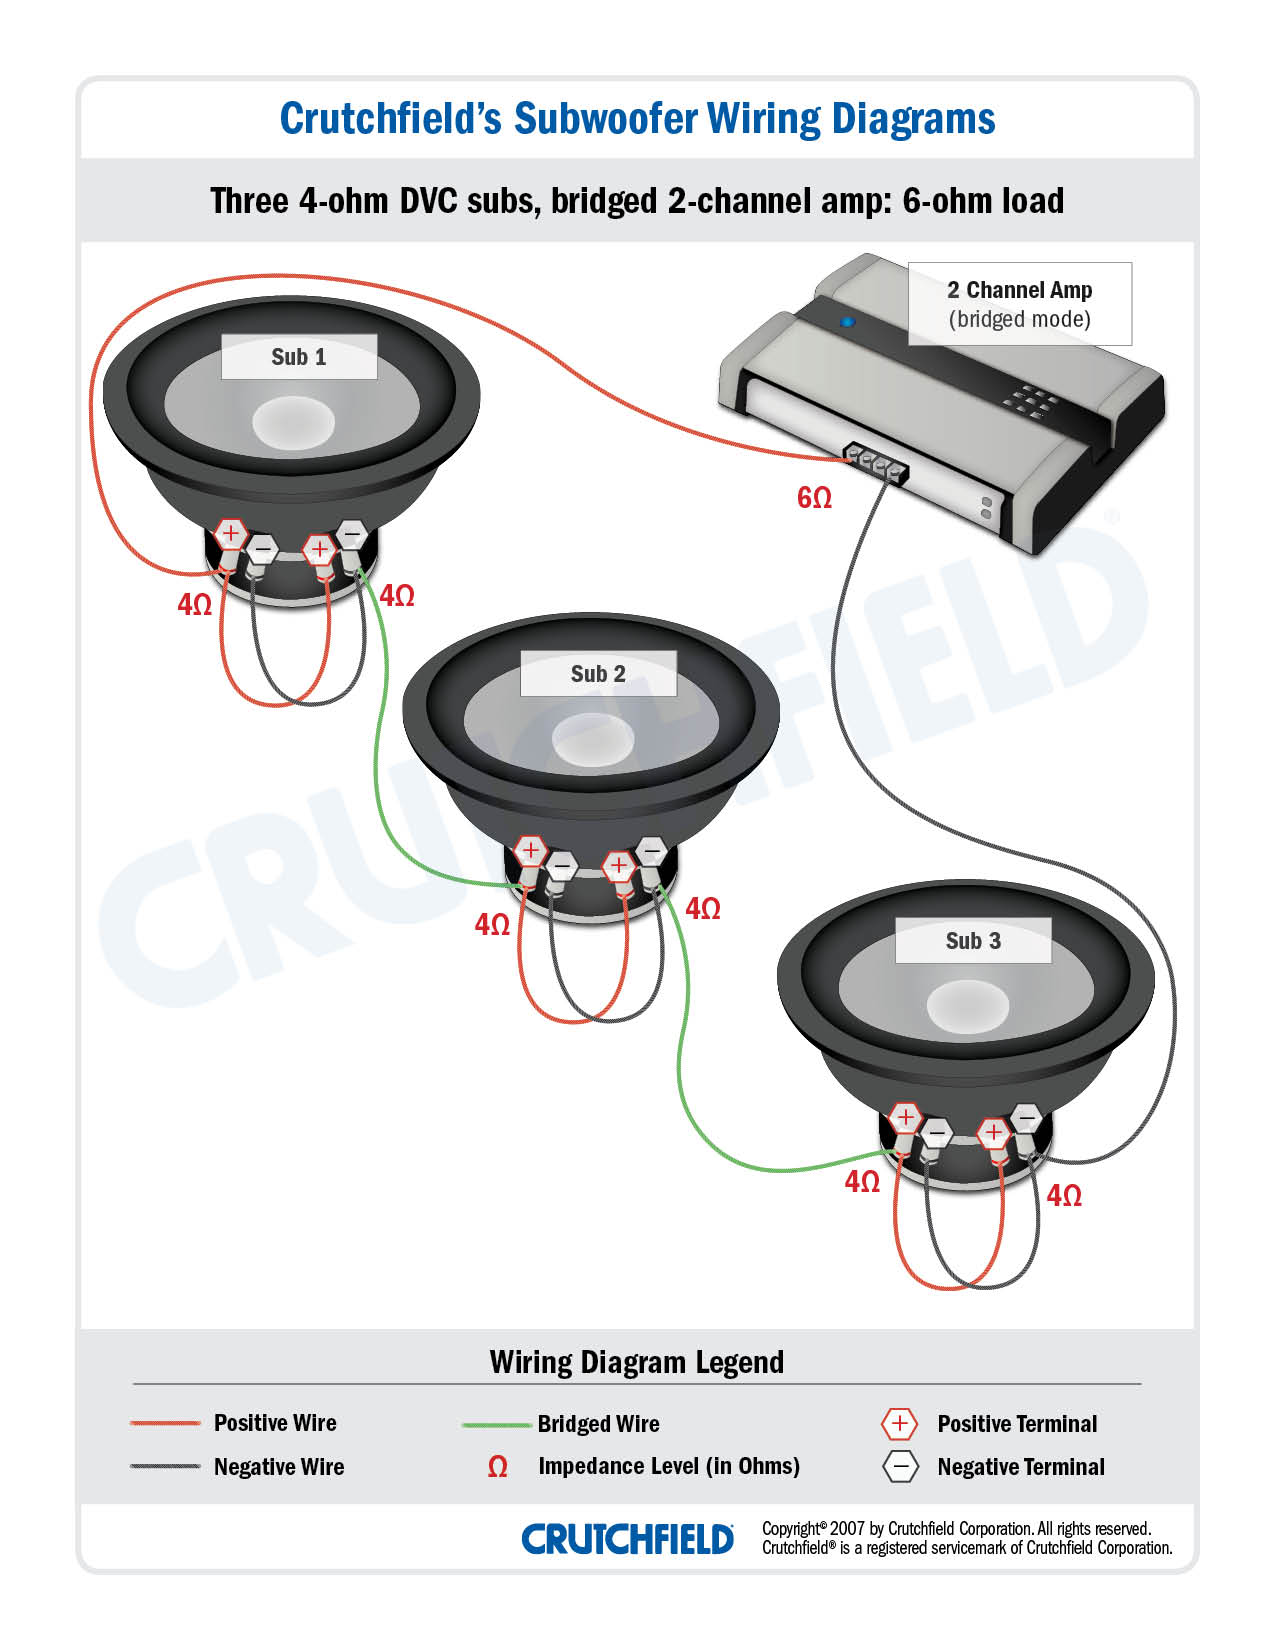 3 DVC 4 ohm 2 ch subwoofer wiring diagrams  at bakdesigns.co